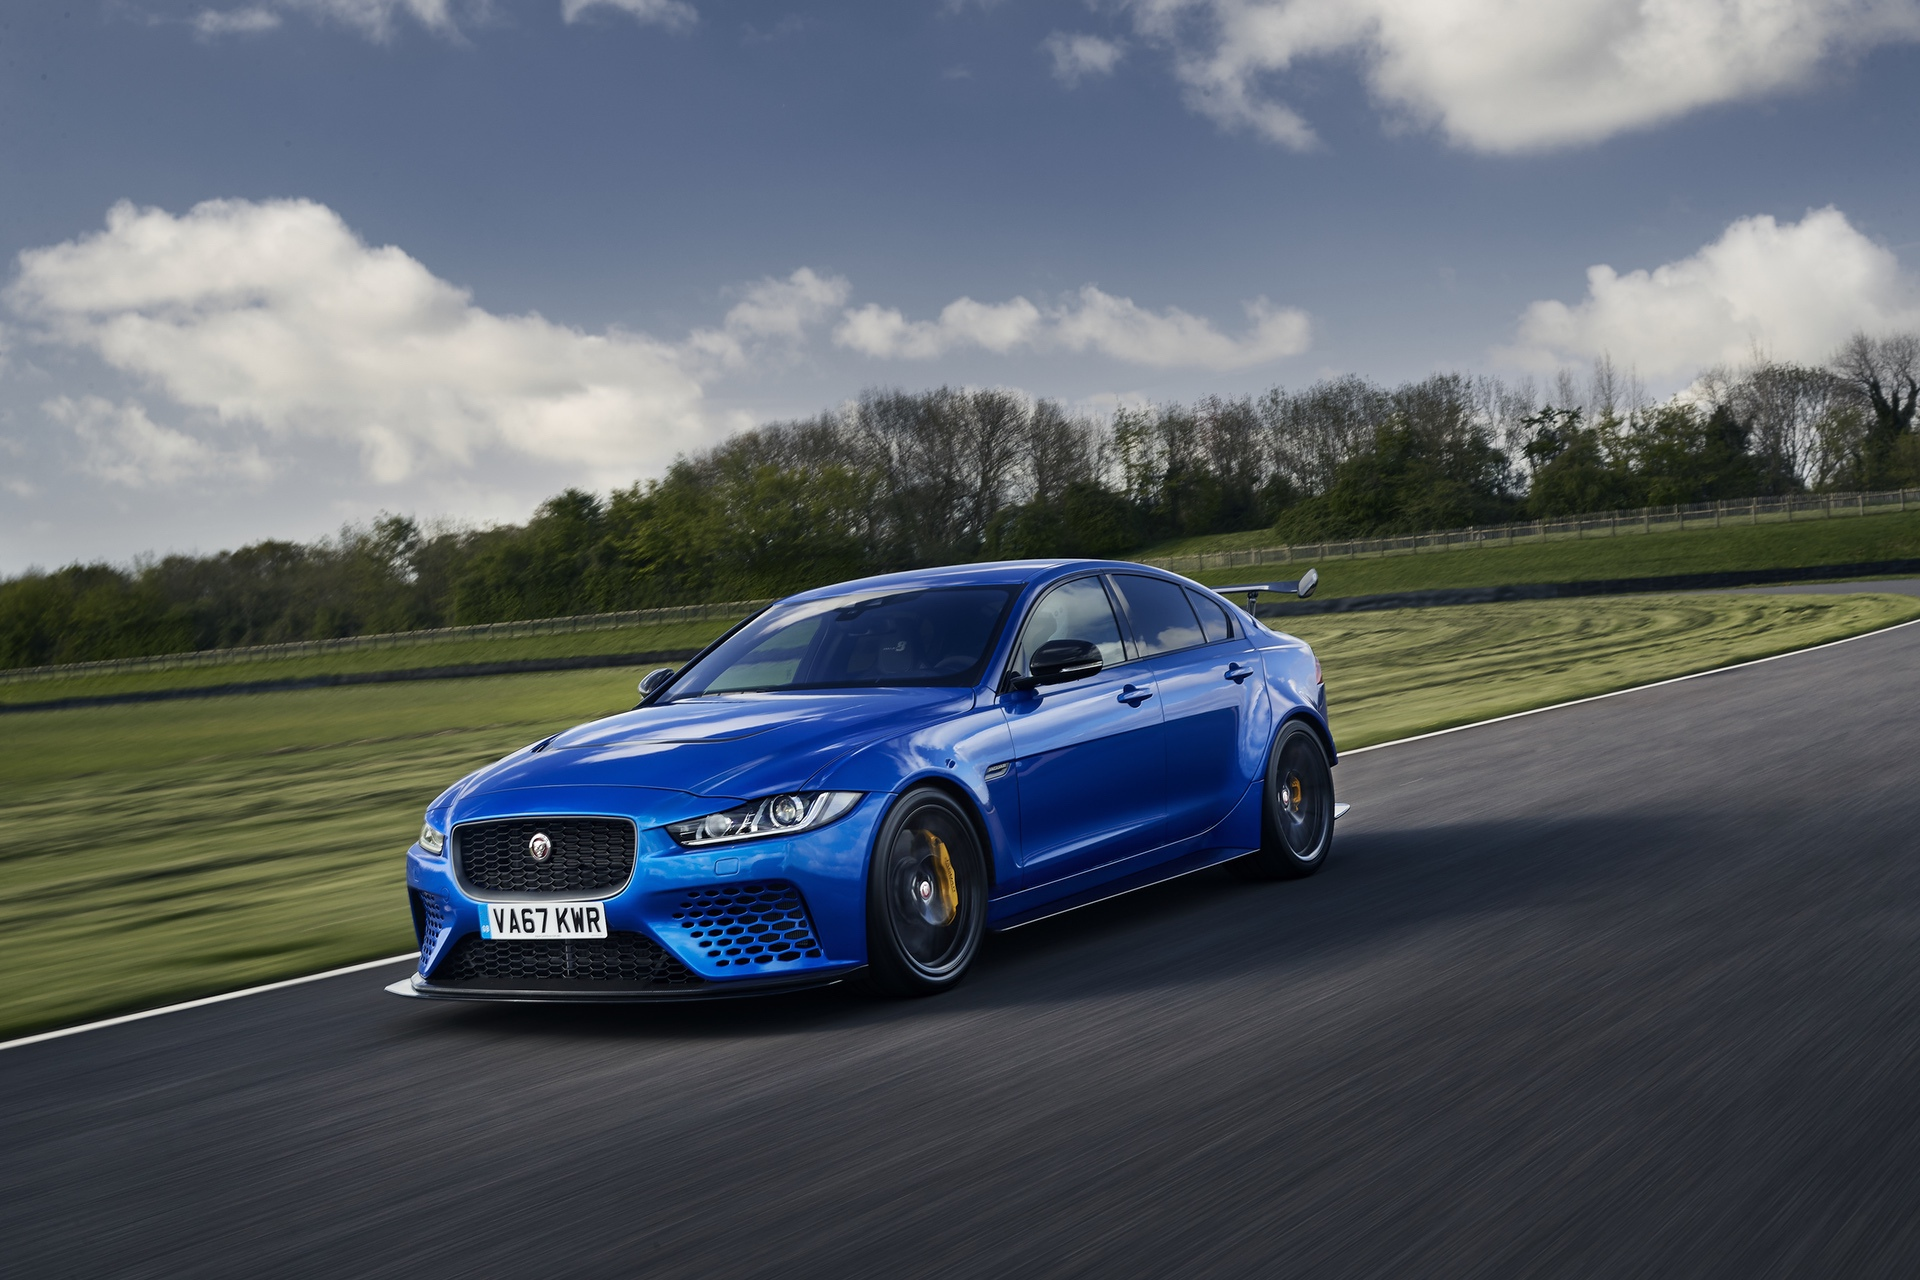 Jaguar_XE-SV_Project_8_at_Goodwood_0002